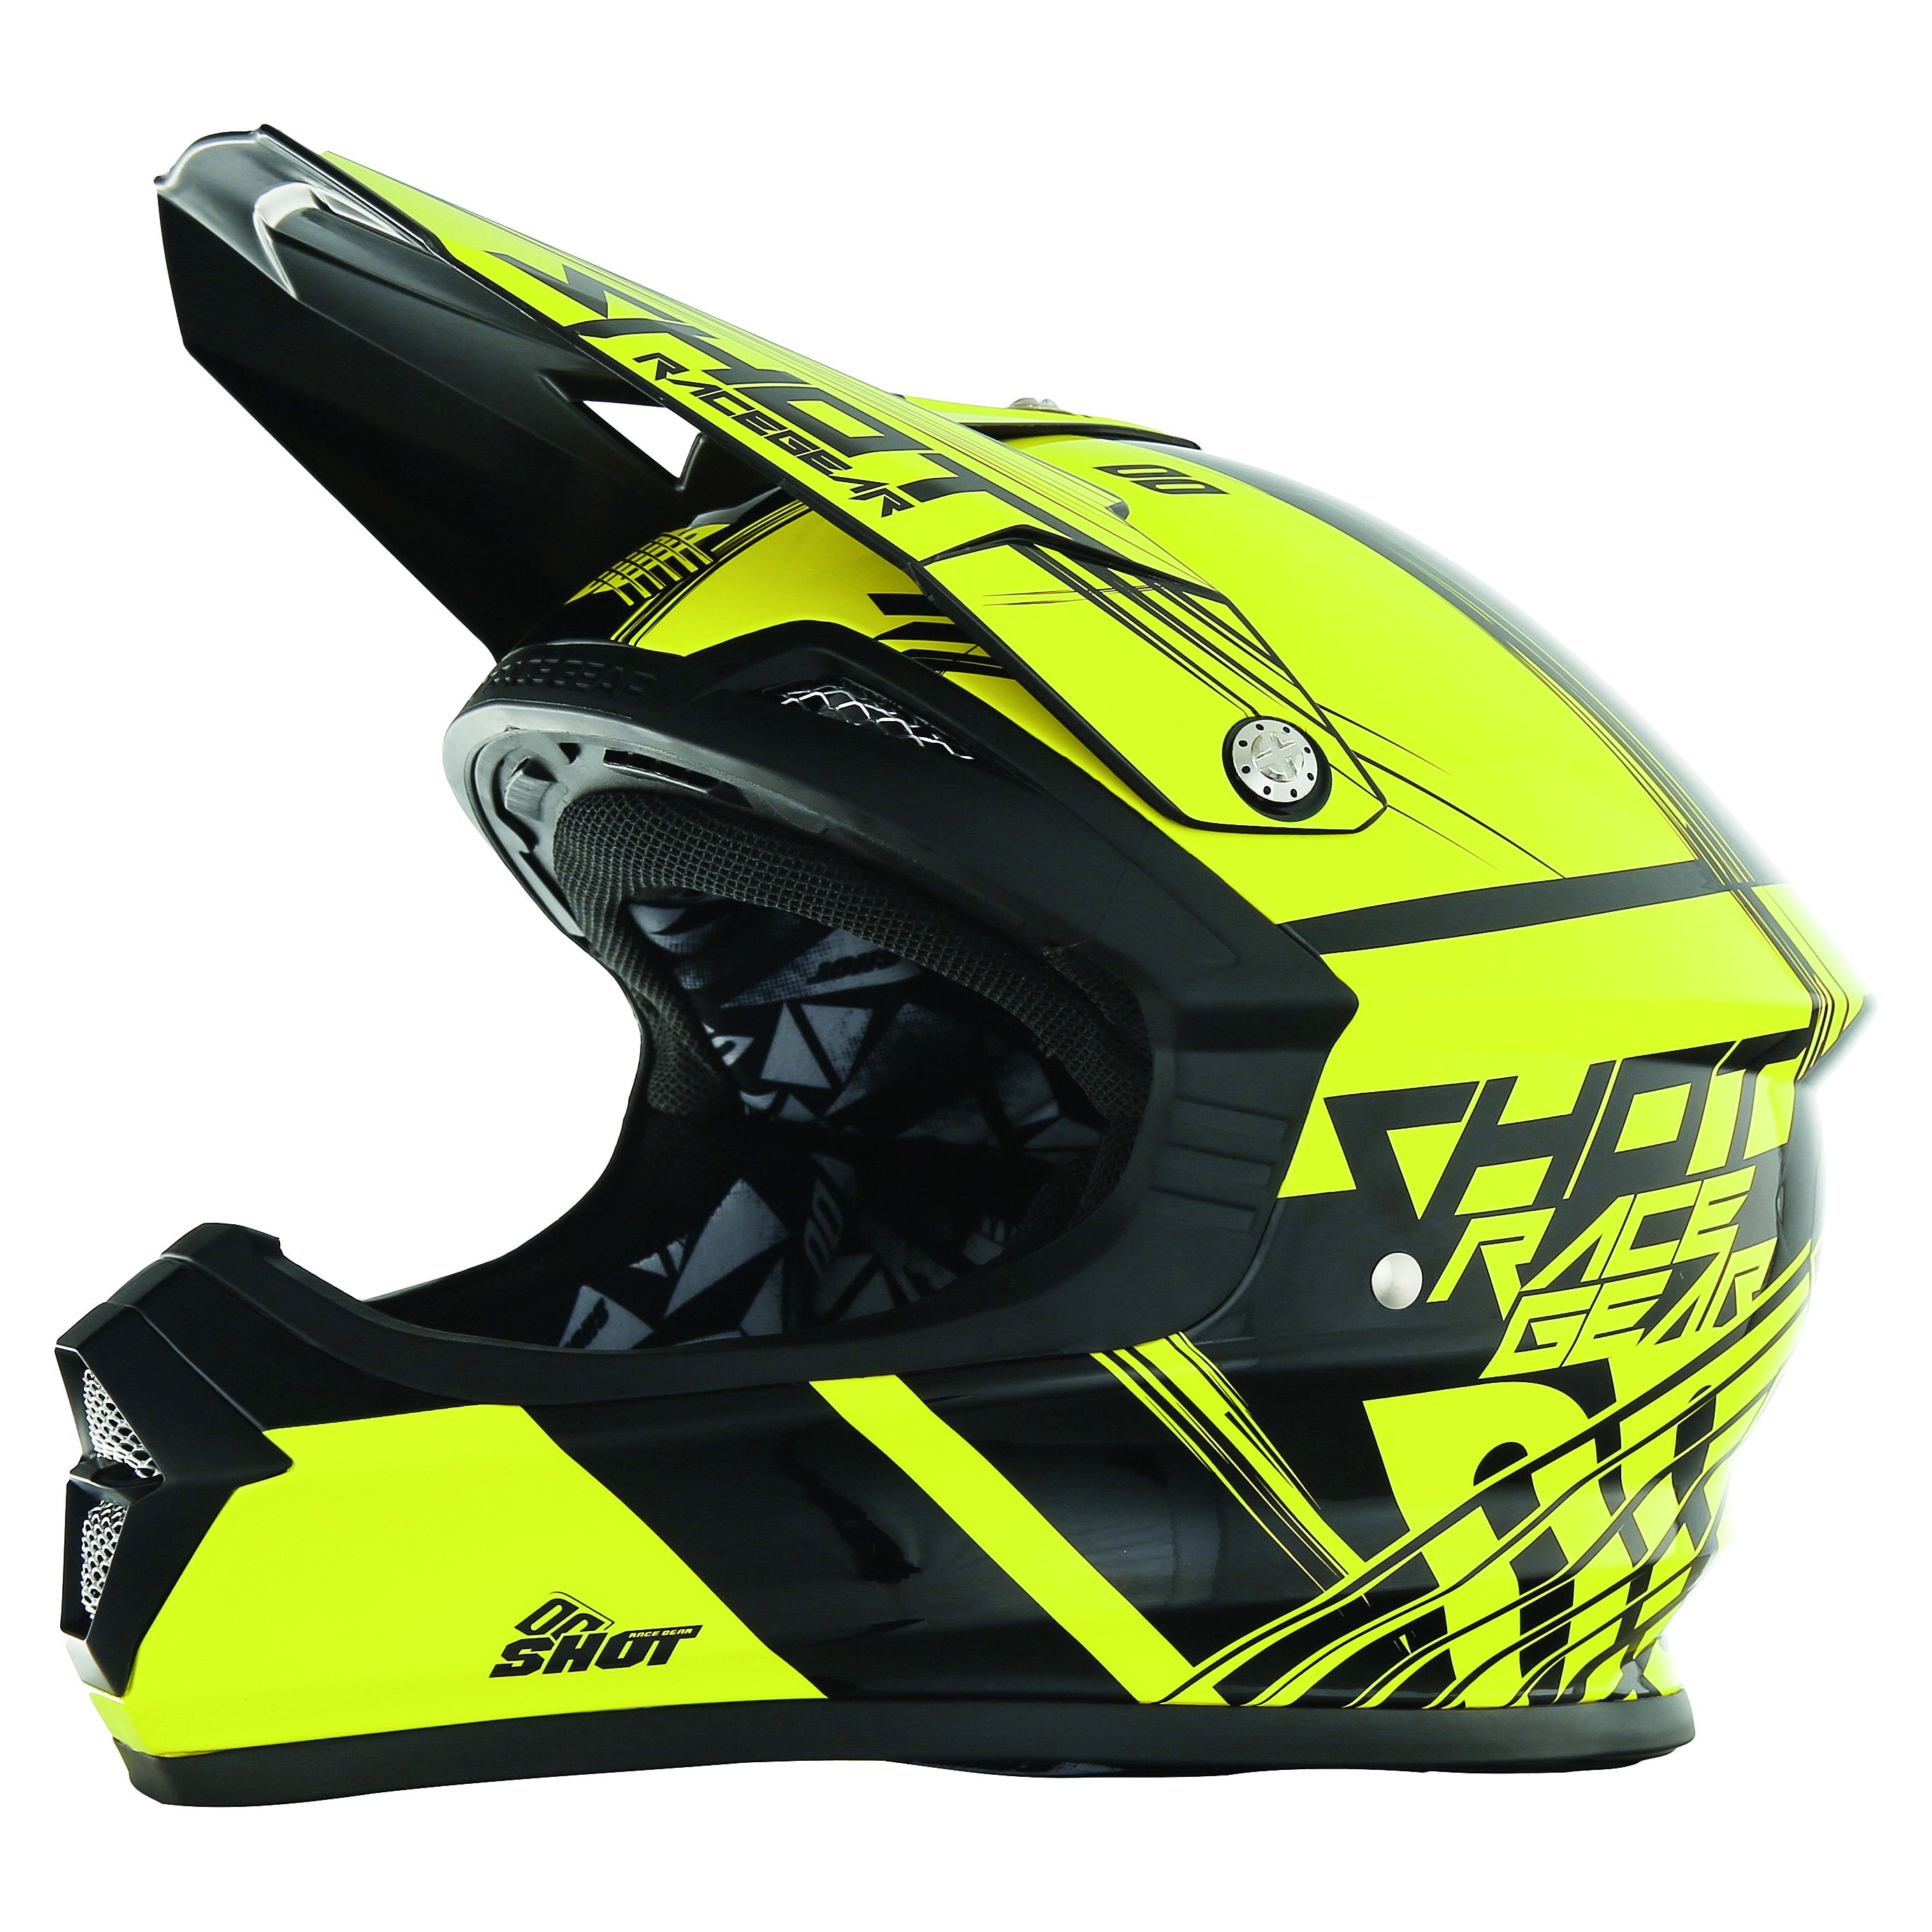 casque cross shot destockage furious claw neon jaune 2017. Black Bedroom Furniture Sets. Home Design Ideas